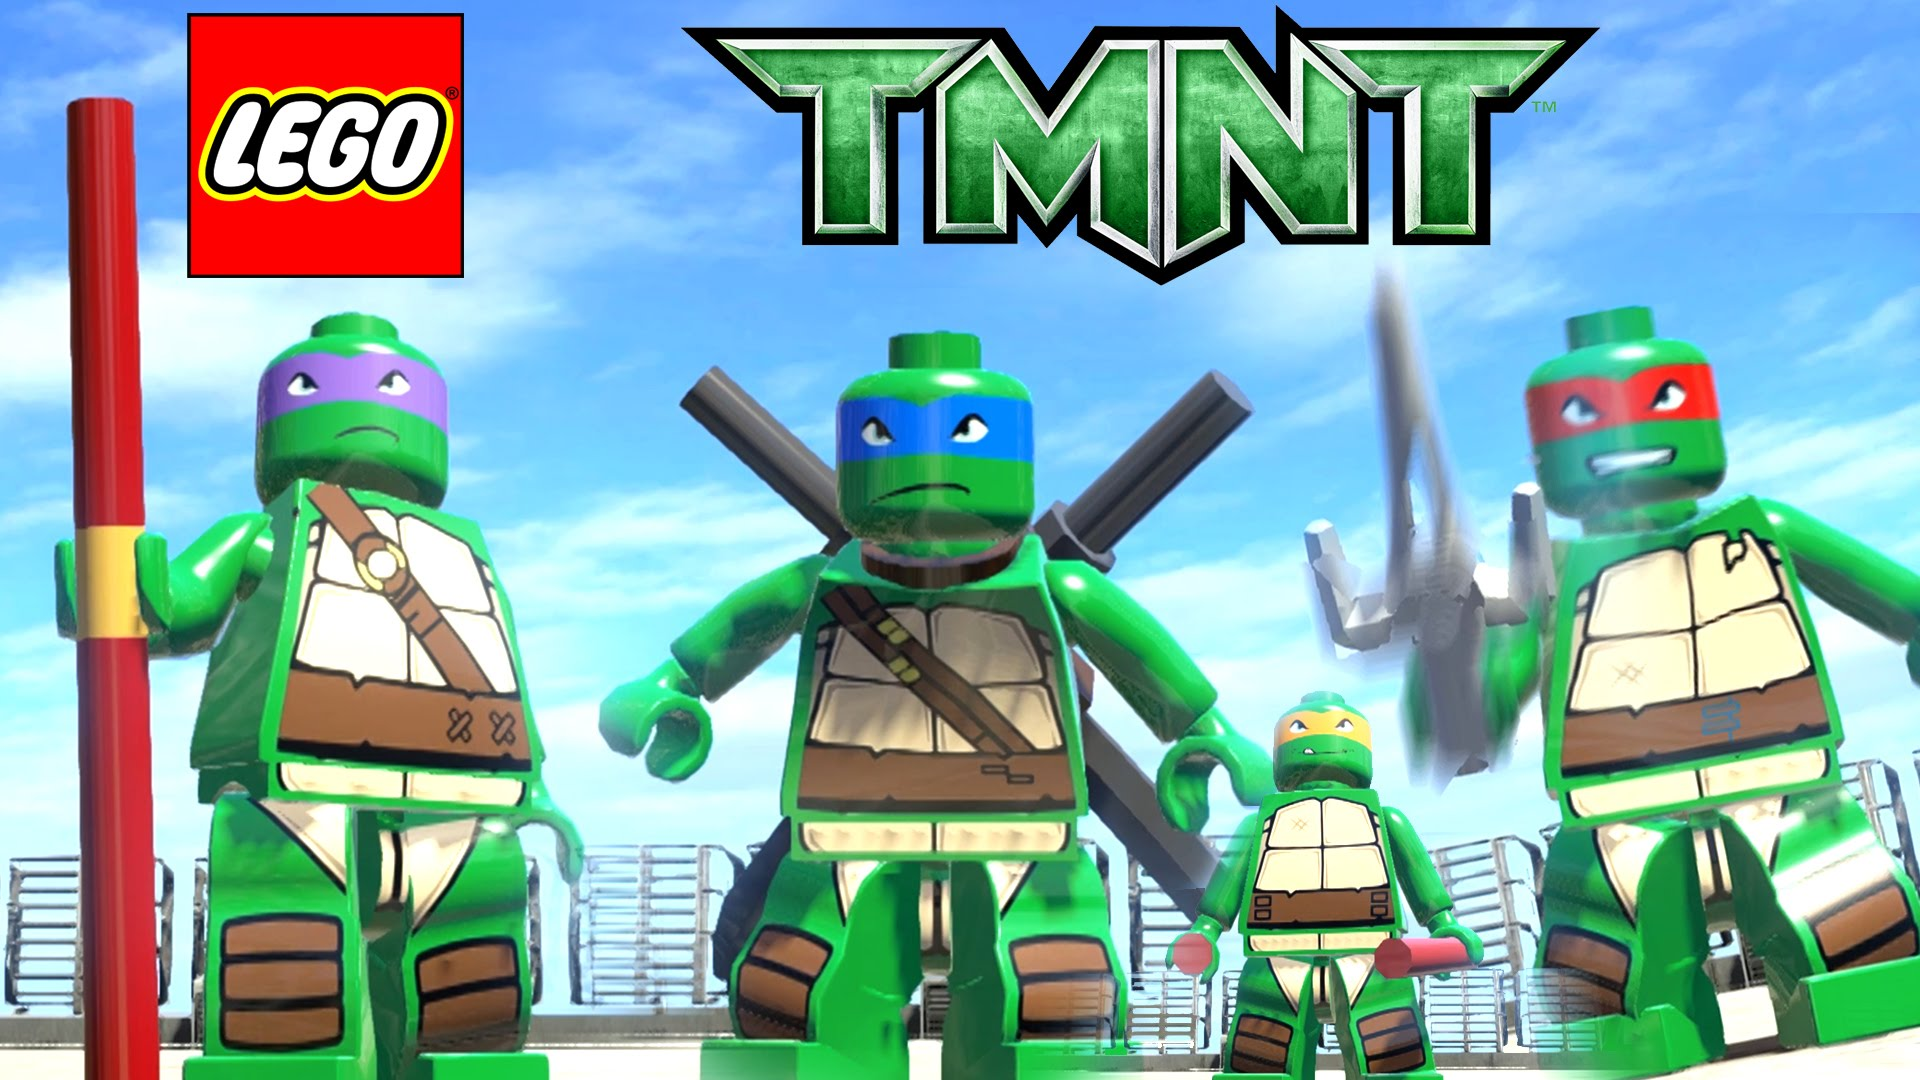 TMNT Backgrounds, Compatible - PC, Mobile, Gadgets| 1920x1080 px